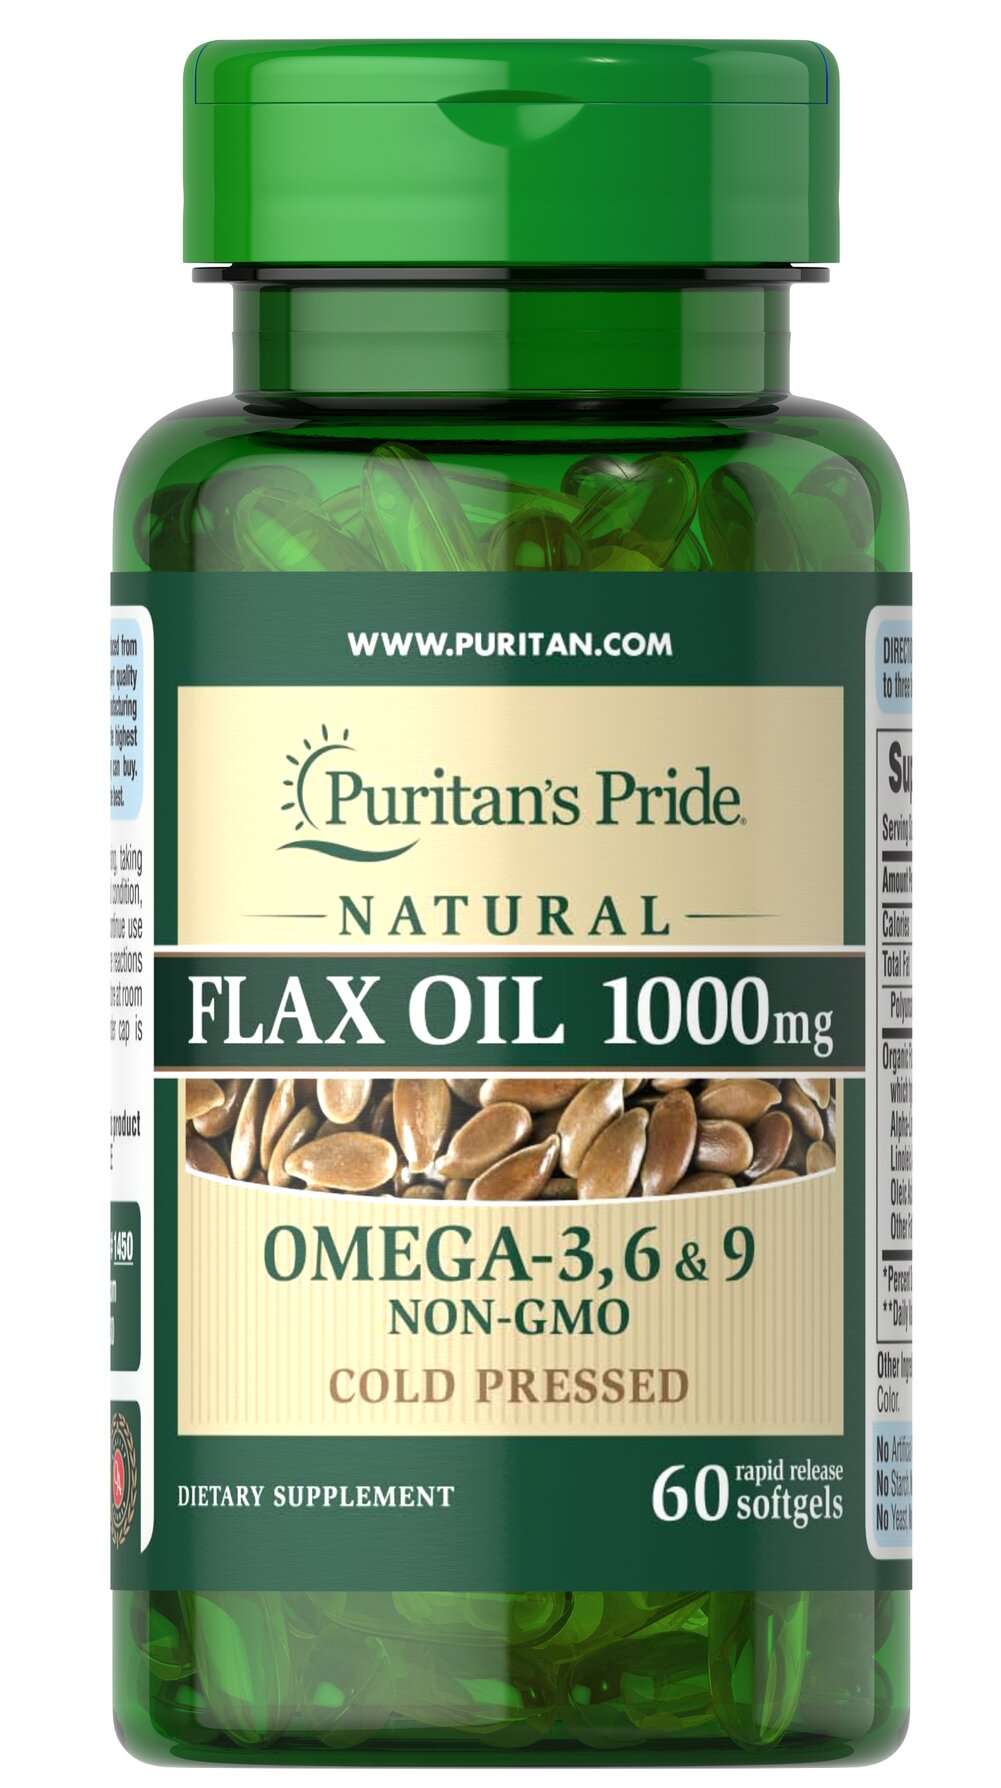 Natural Flax Oil 1000 mg  60 Rapid Release Softgels 1000 mg $6.99